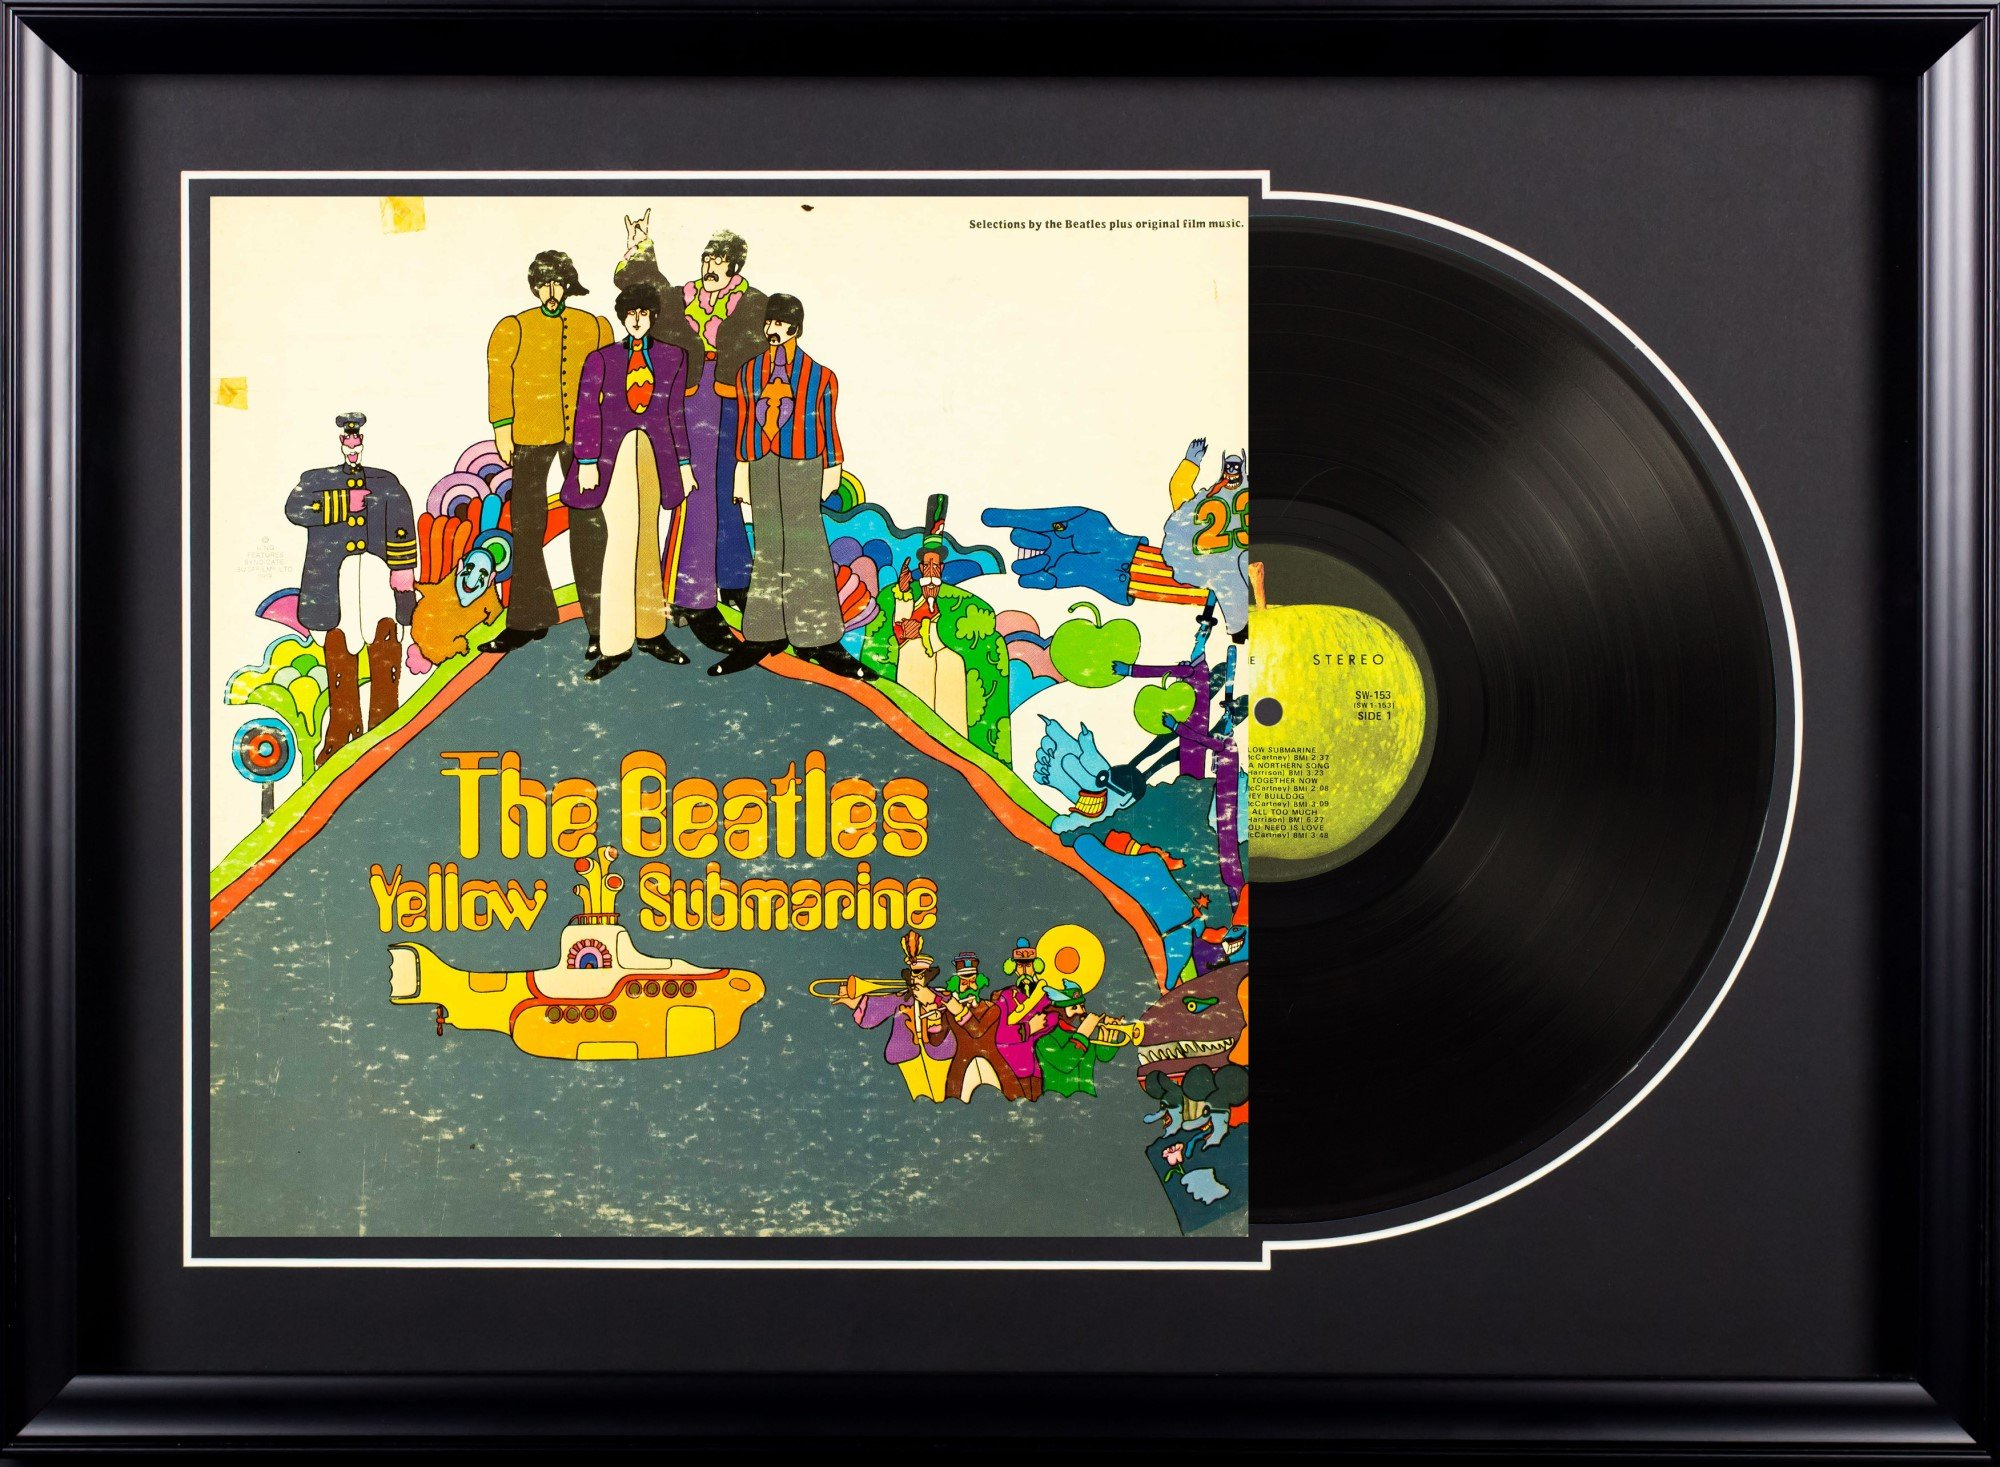 Vintage Favs the Beatles Yellow Submarine Deluxe Framed Vintage Vinyl Album